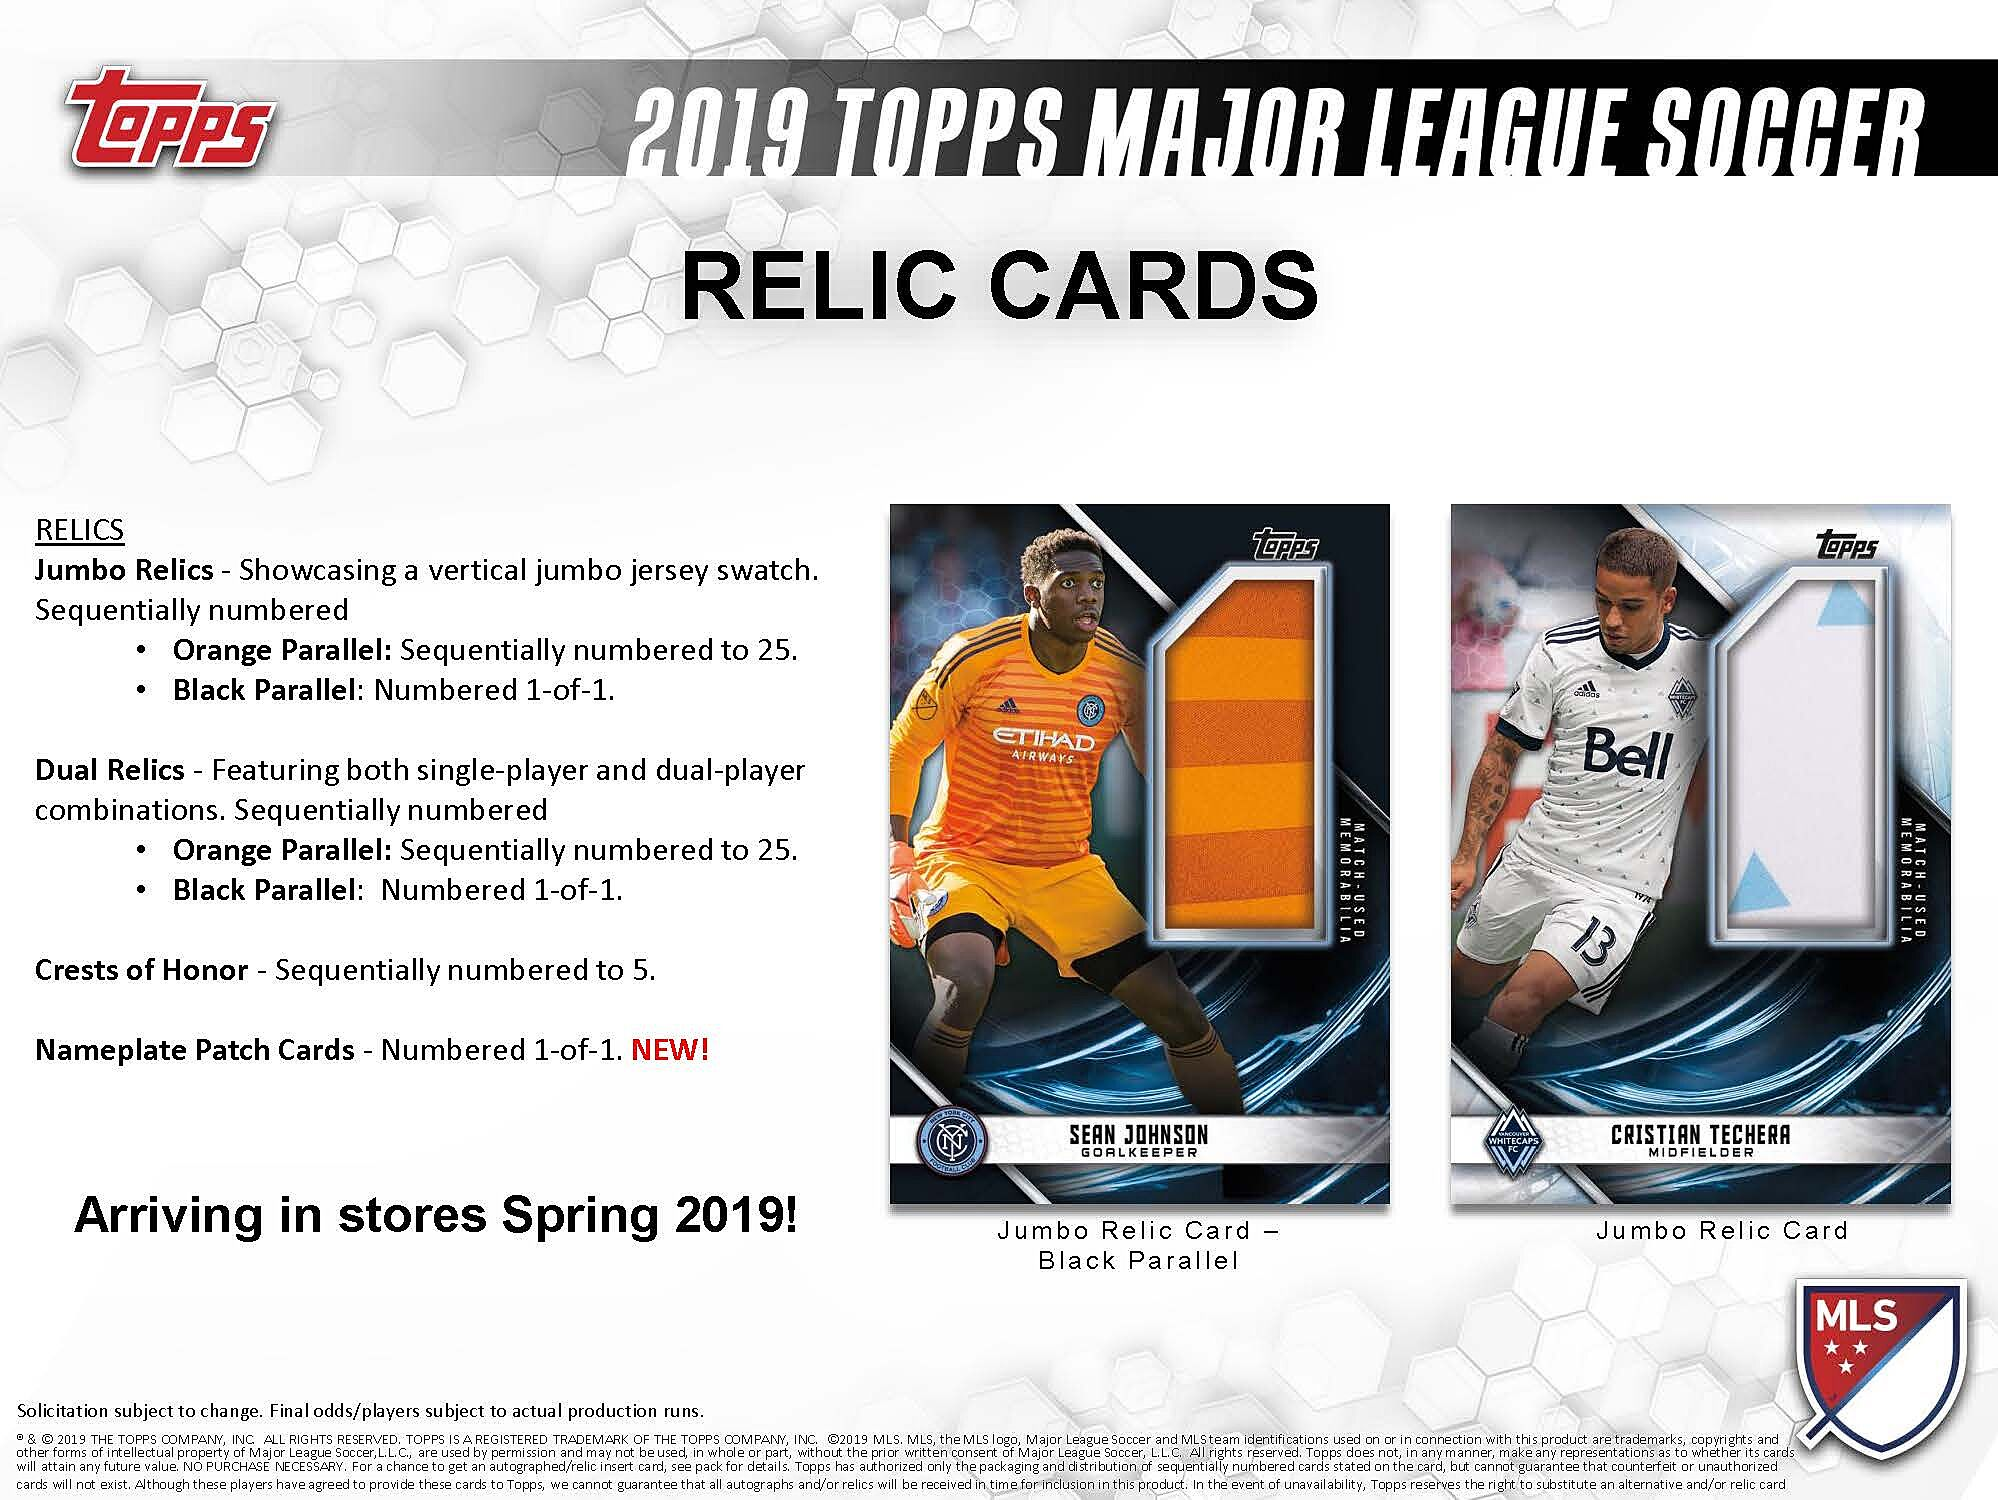 1d9dced8c93 Topps Major League Soccer 2019 provides three relics per hobby box at a  very reasonable price point. Here s a review for anyone considering card  collecting.